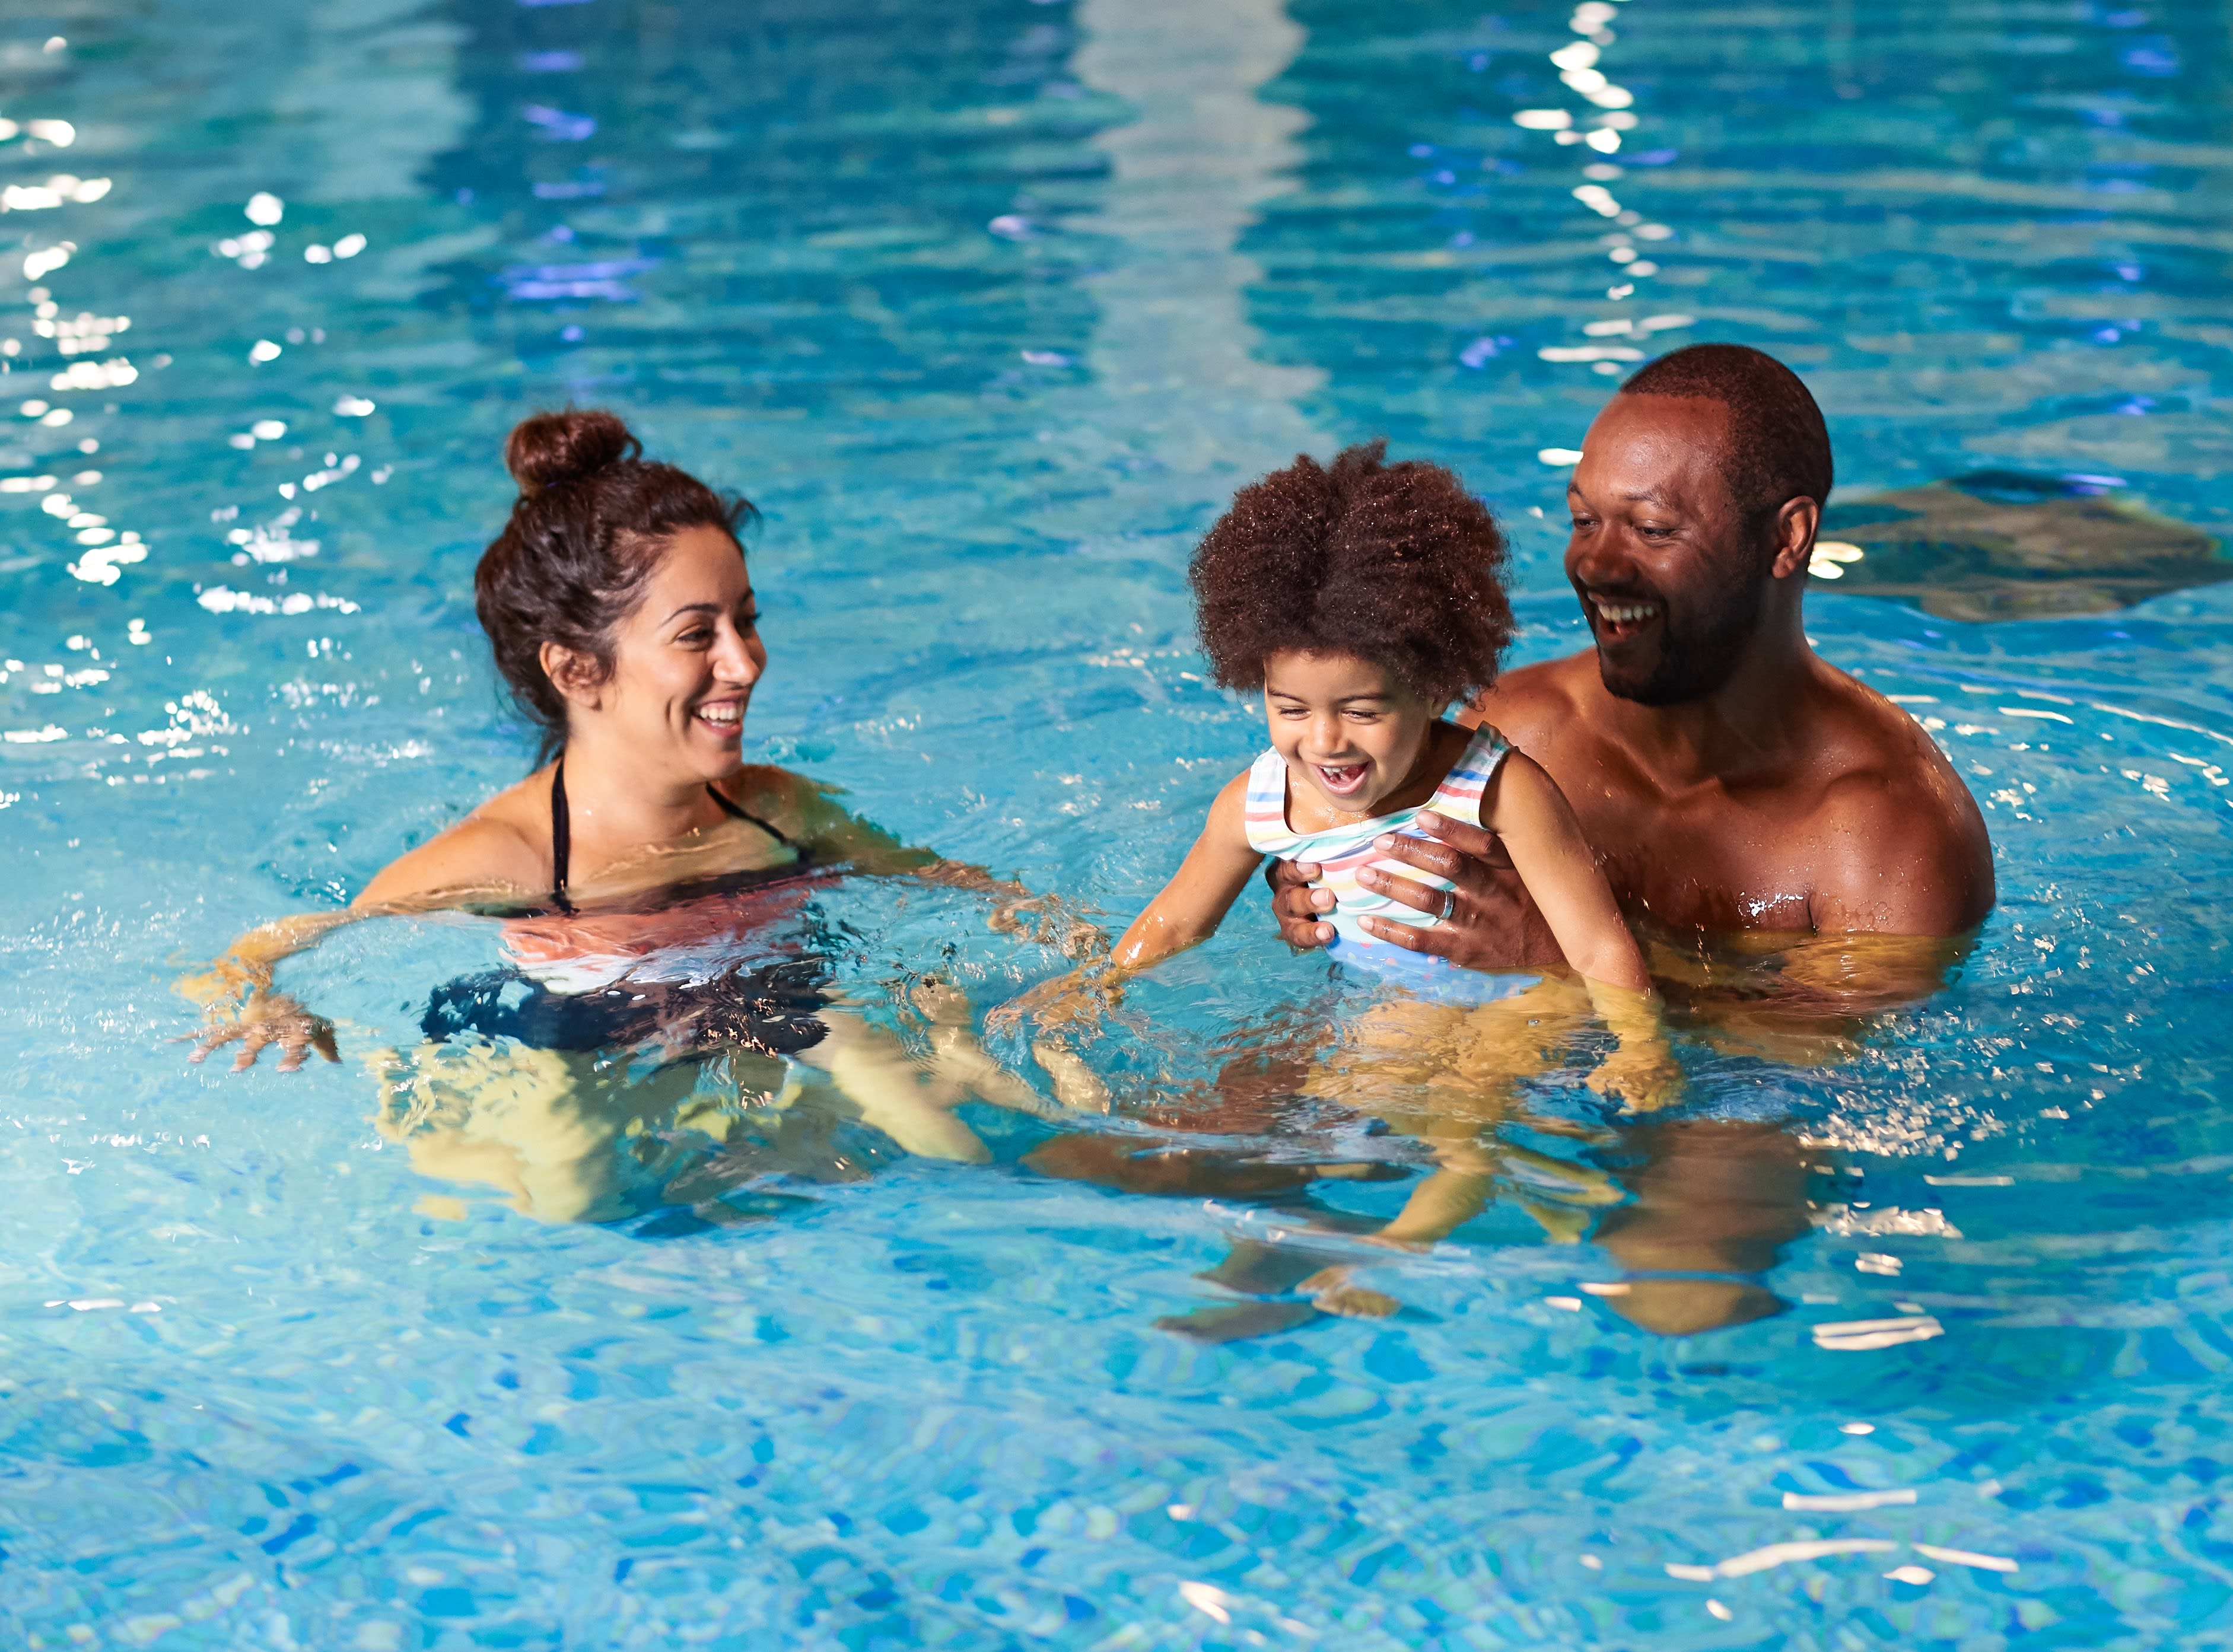 A grinning family playing in the pool